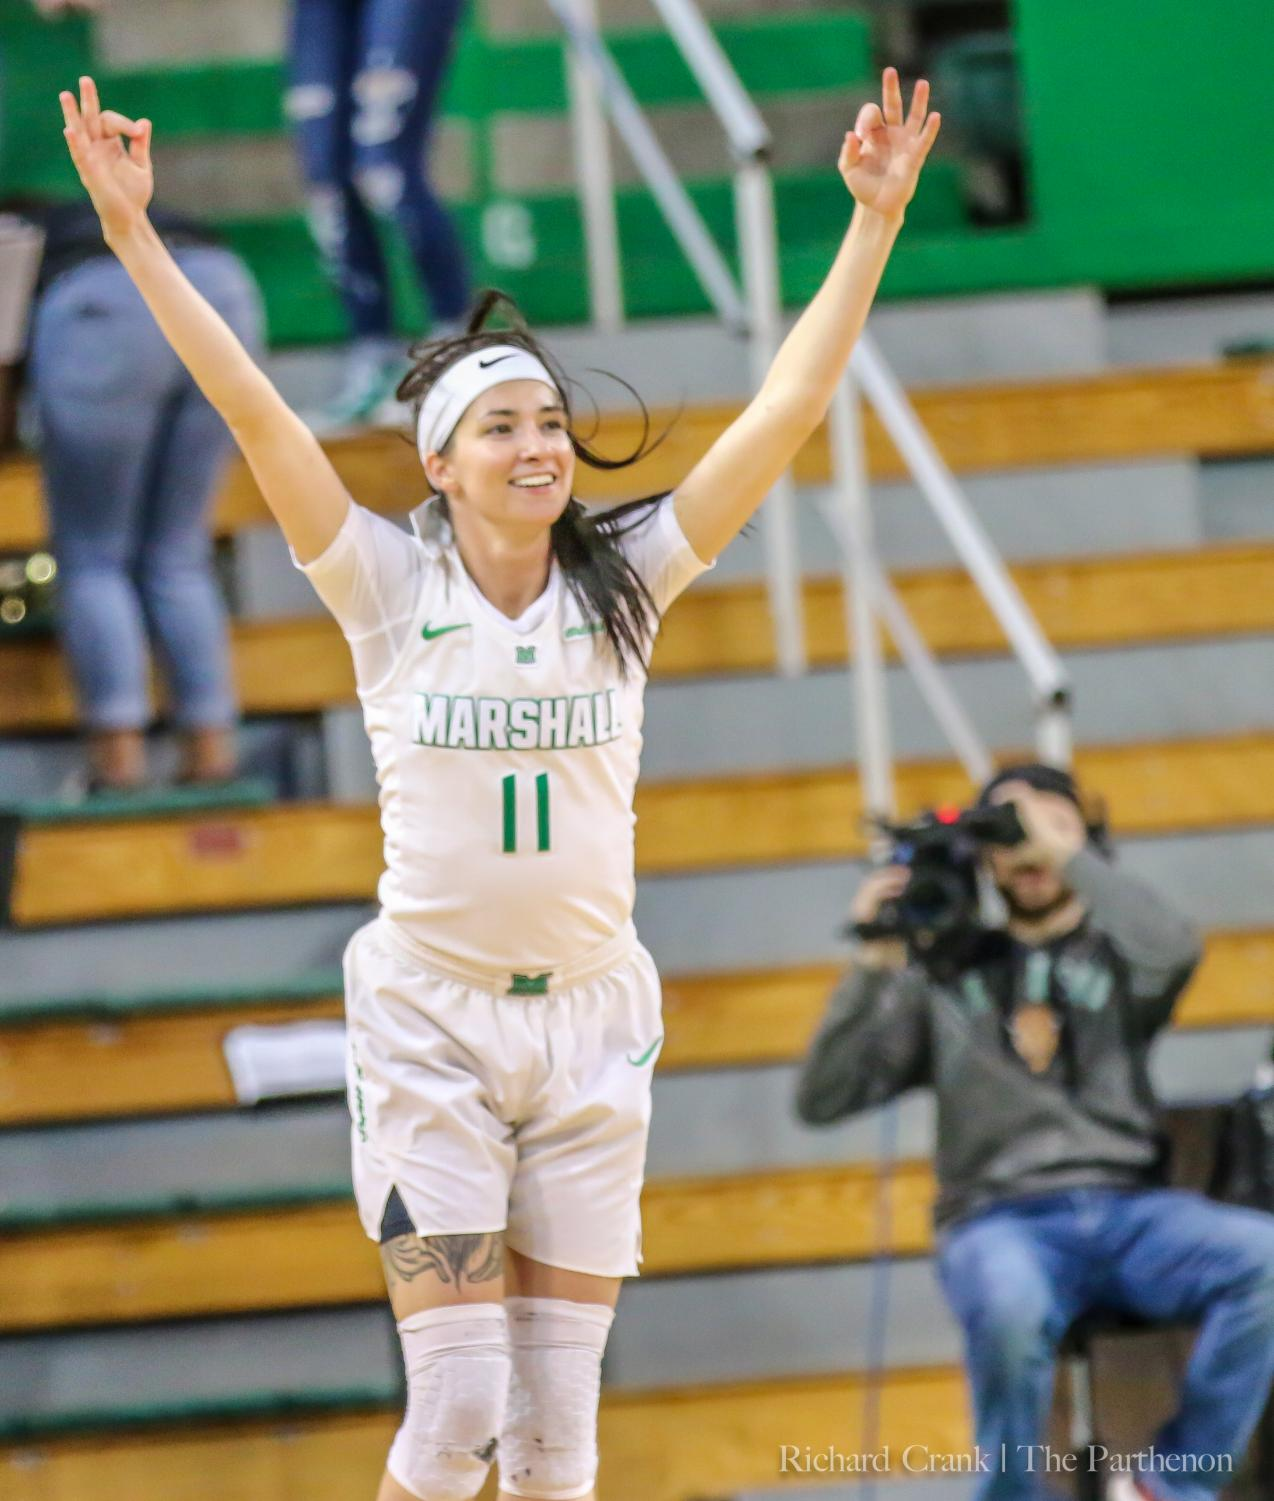 Marshall guard Taylor Porter (11) celebrates one of her 10 made 3-pointers during the Thundering Herd's win over FIU on Mar. 7, 2019 at the Cam Henderson Center.